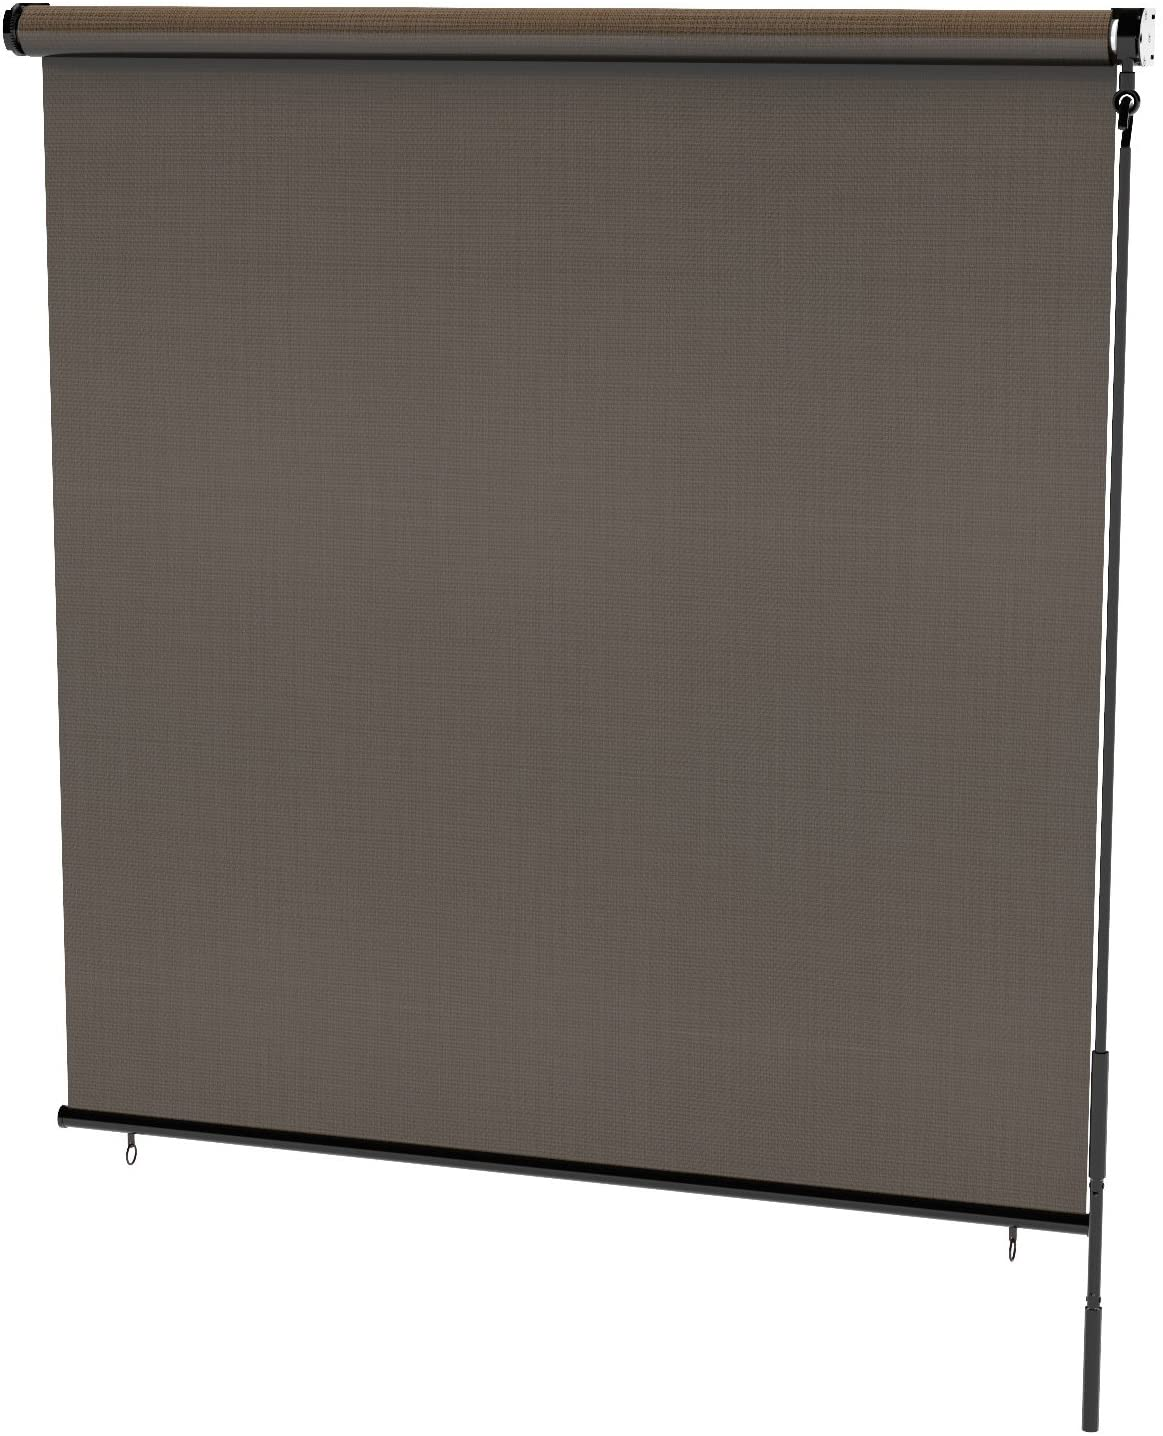 Radiance 0371648 Cordless Exterior Solar Shade Coconut Brown, 48x72